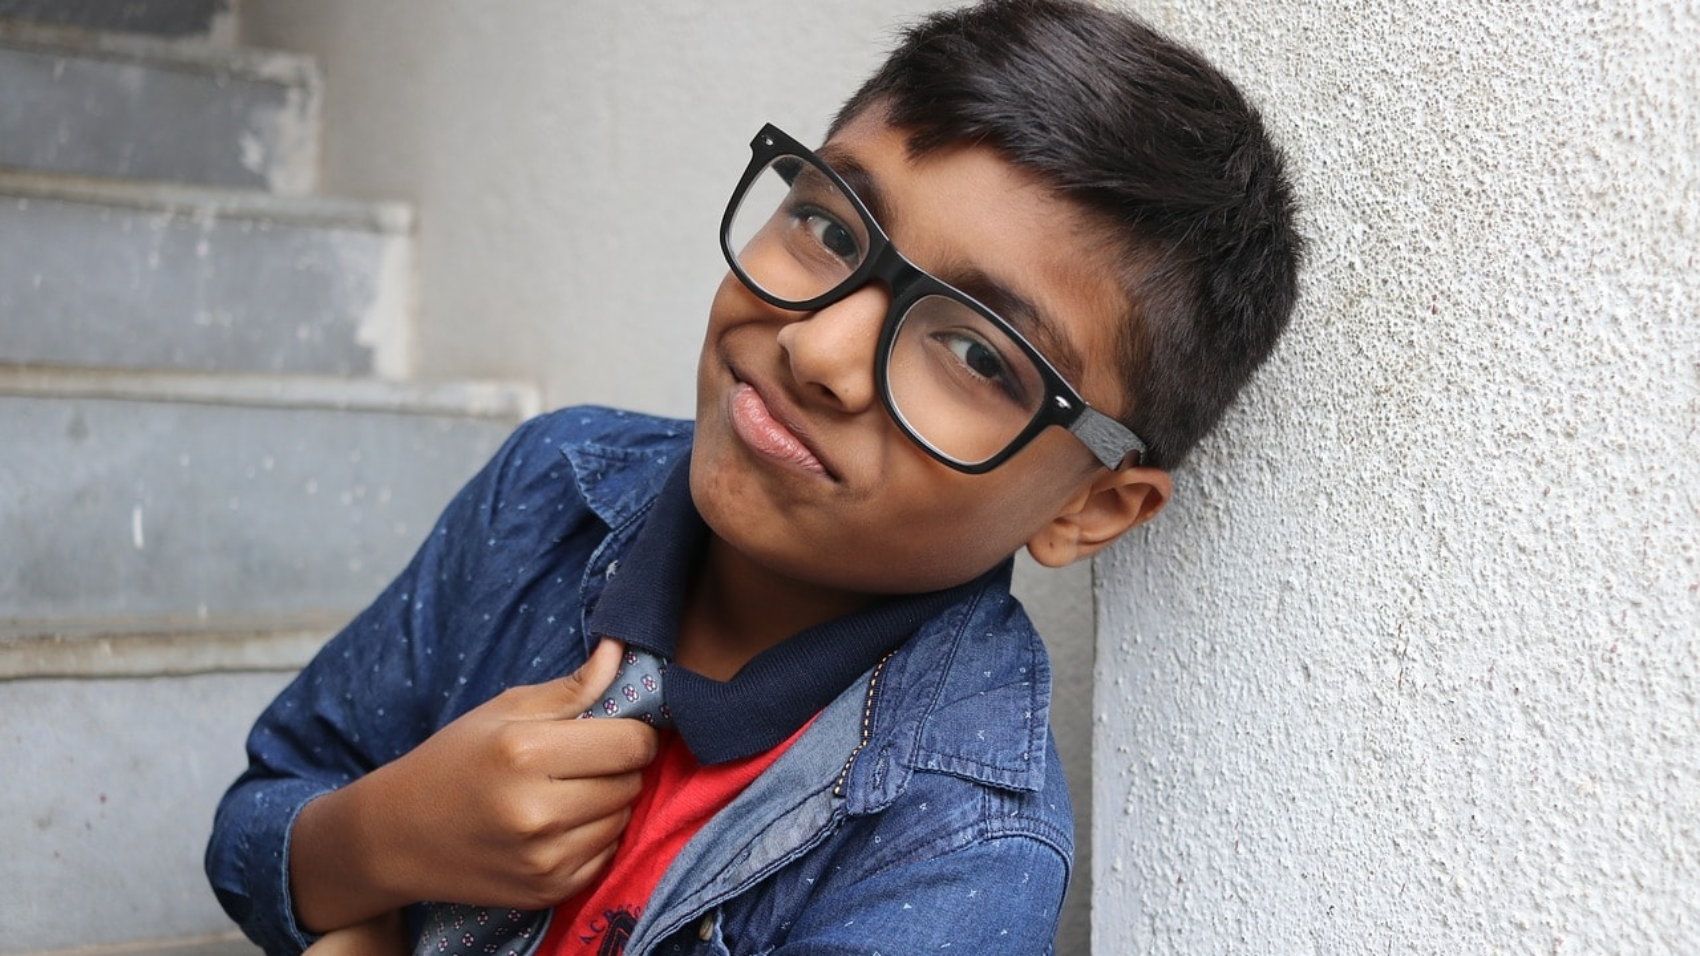 10 Steps to Help Your Child Adjust to Having Glasses